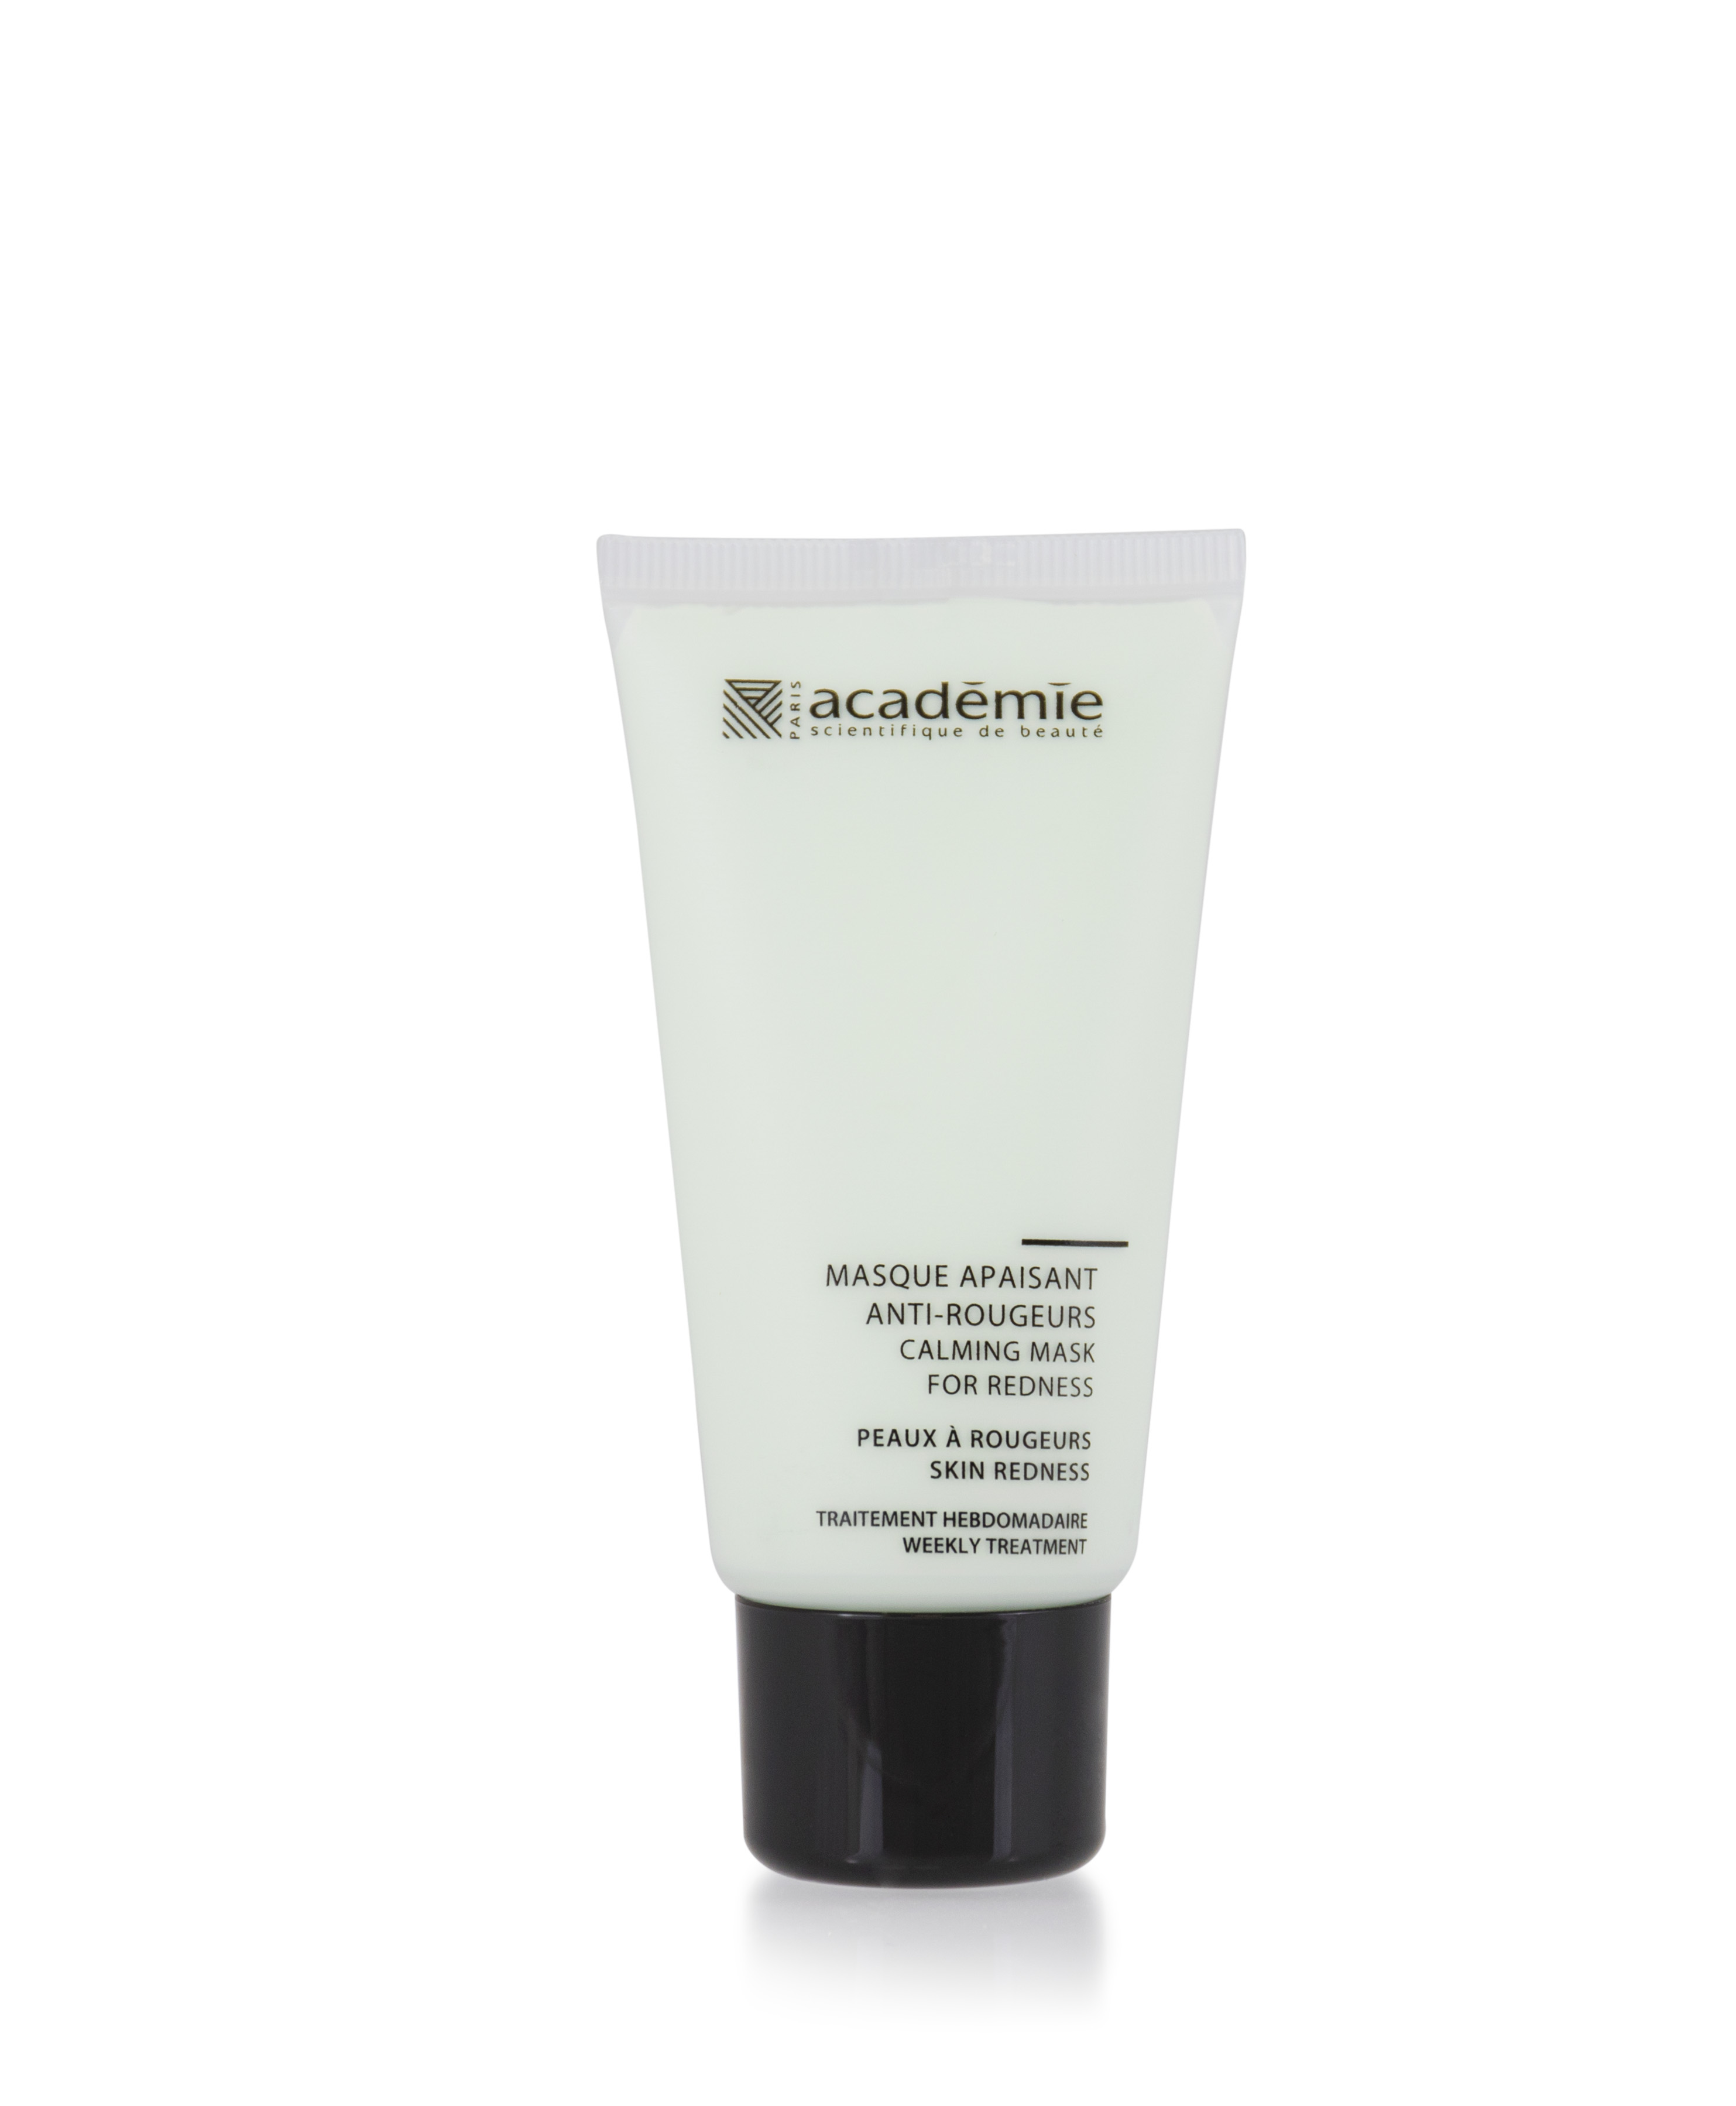 Bőrnyugtató maszk - Masque apaisant anti-rougeurs - Calming Mask for Redness, 50ml